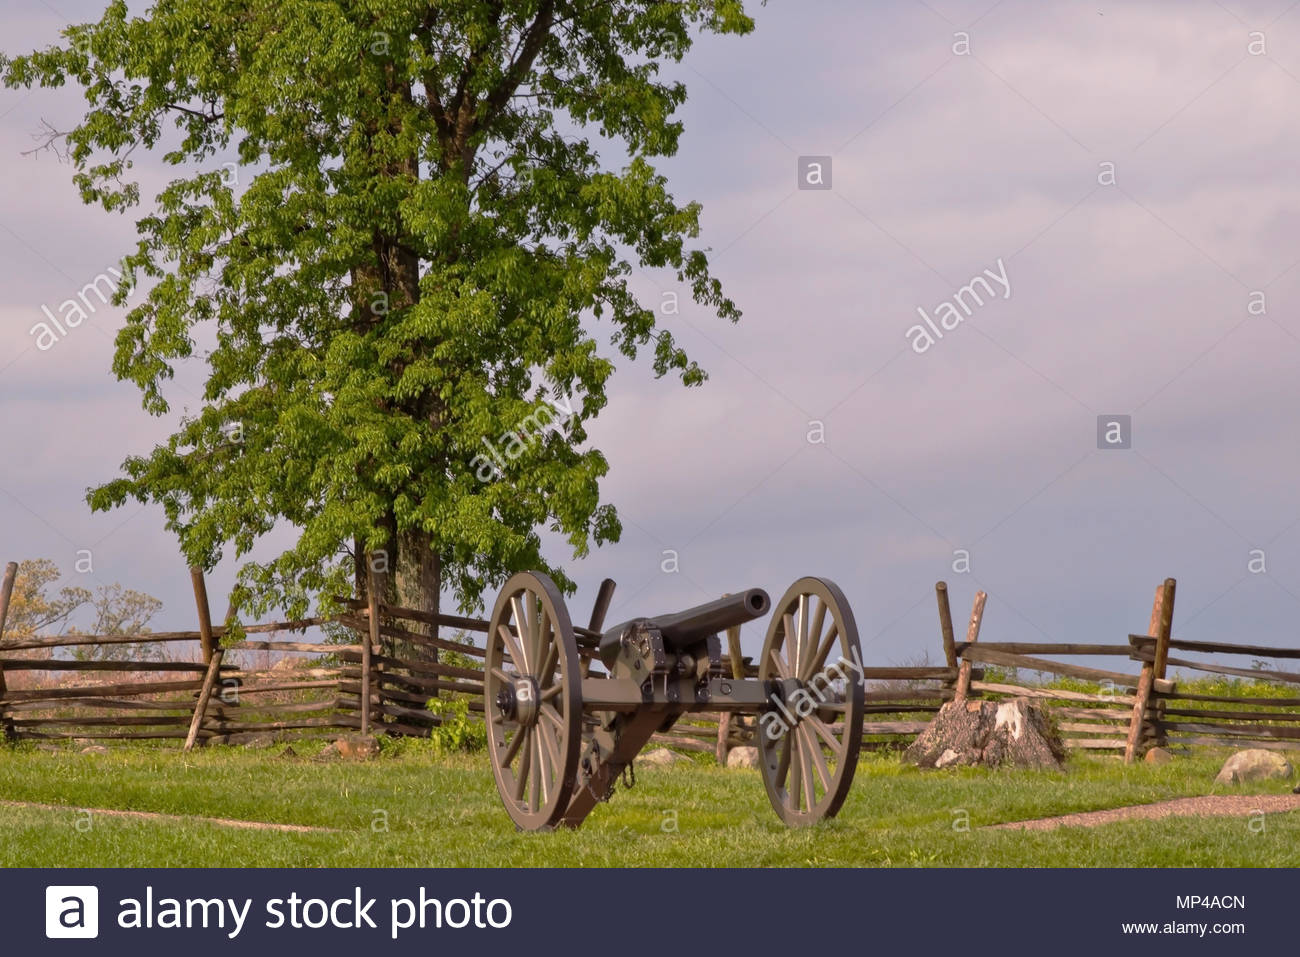 A cannon at Gettysburg National Battlefield with a wooden fence 1300x957